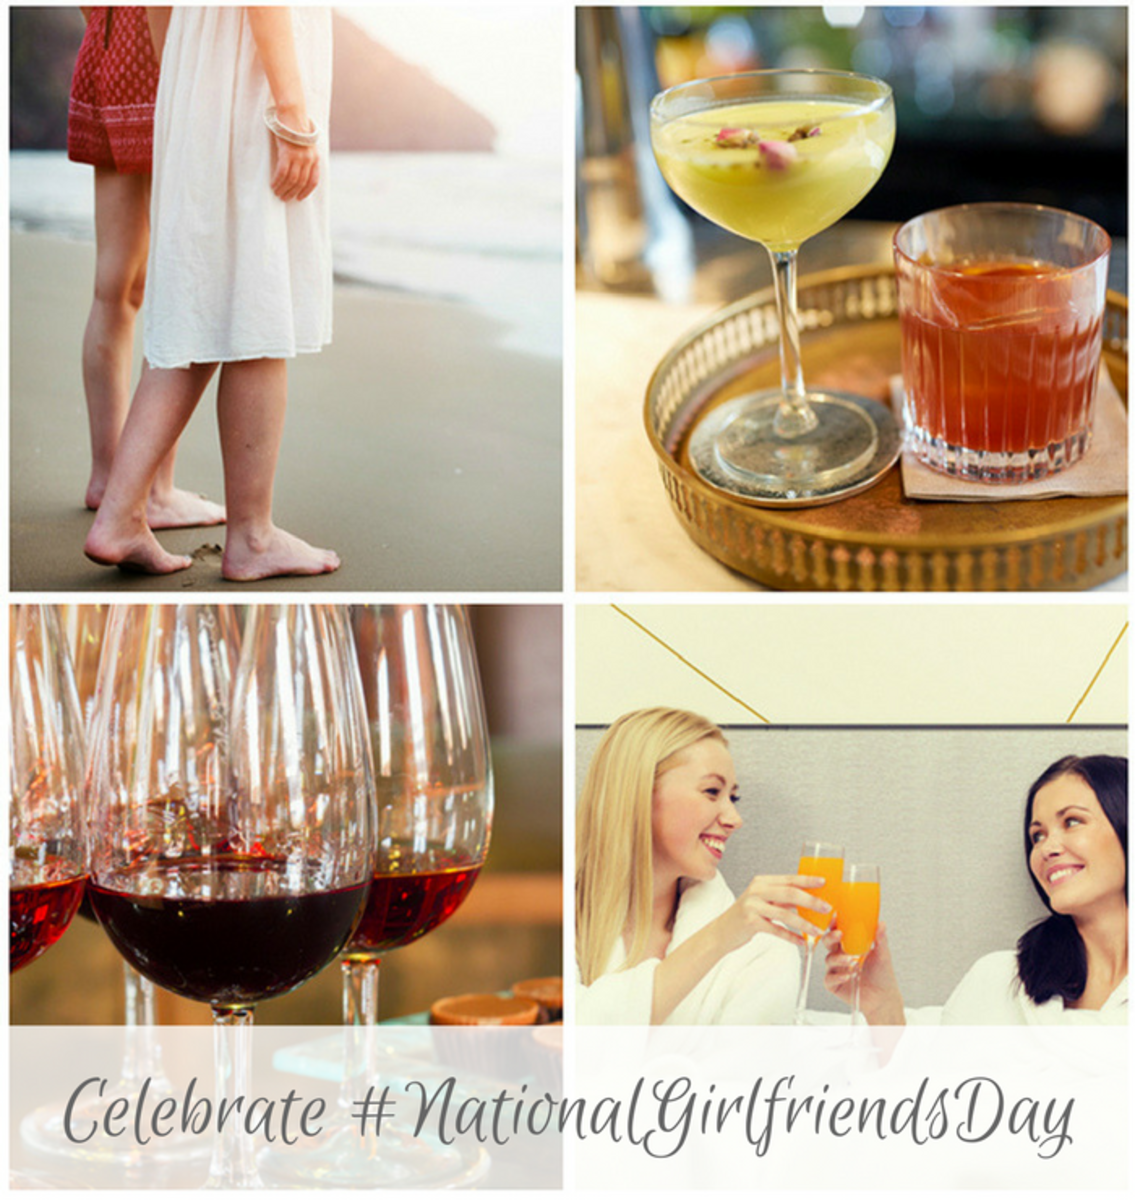 How to Celebrate #NationalGirlfriendsDay